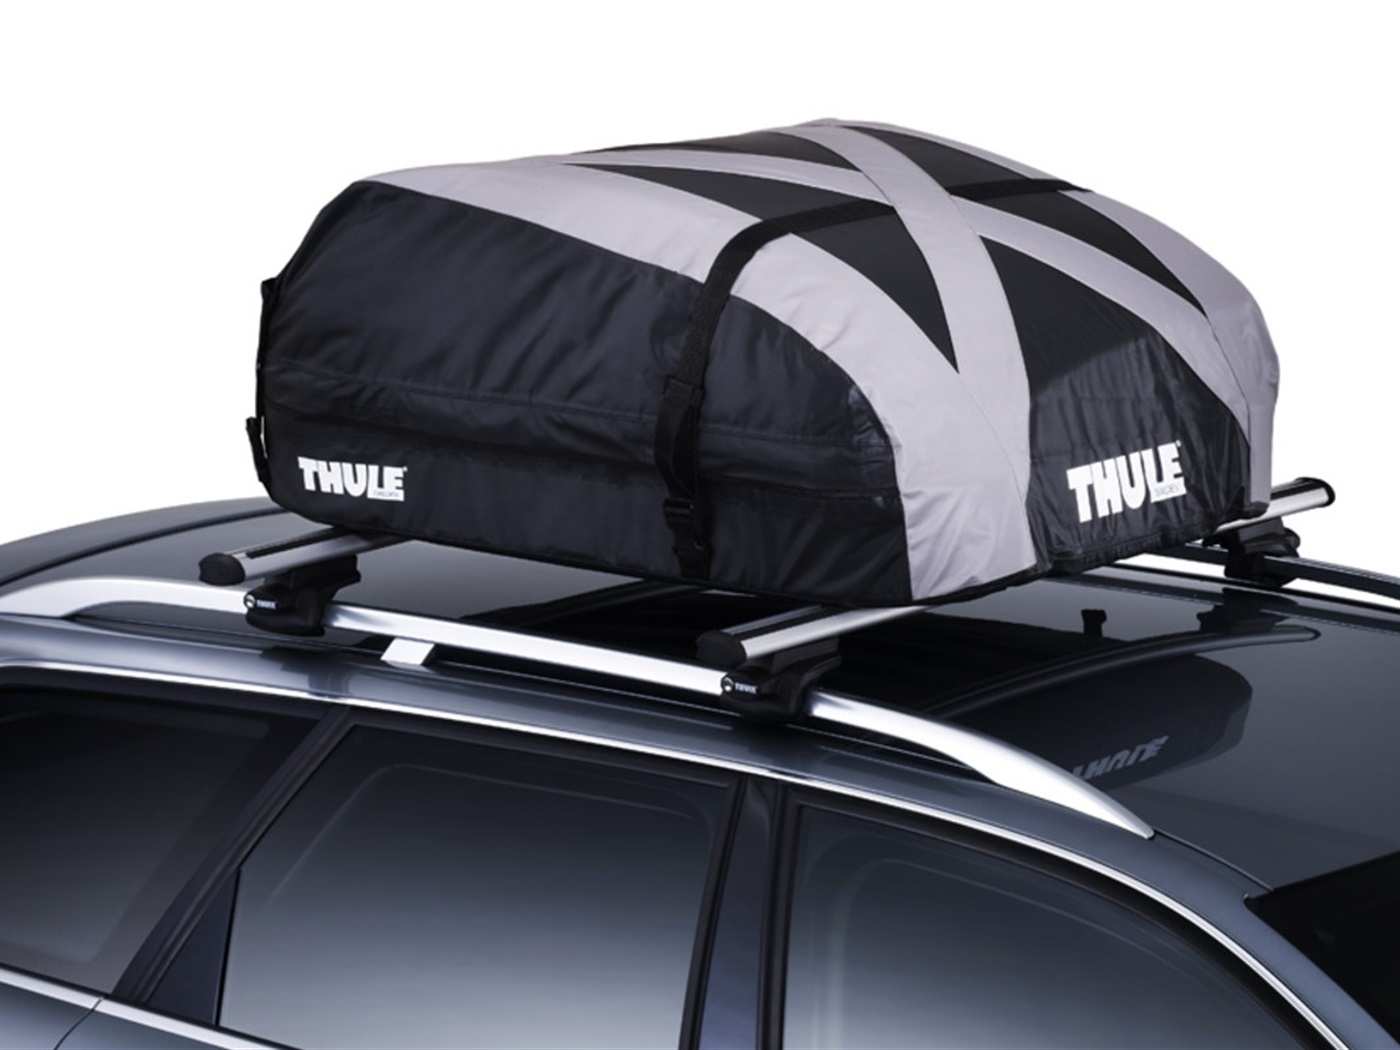 Thule Ranger 90 soft box